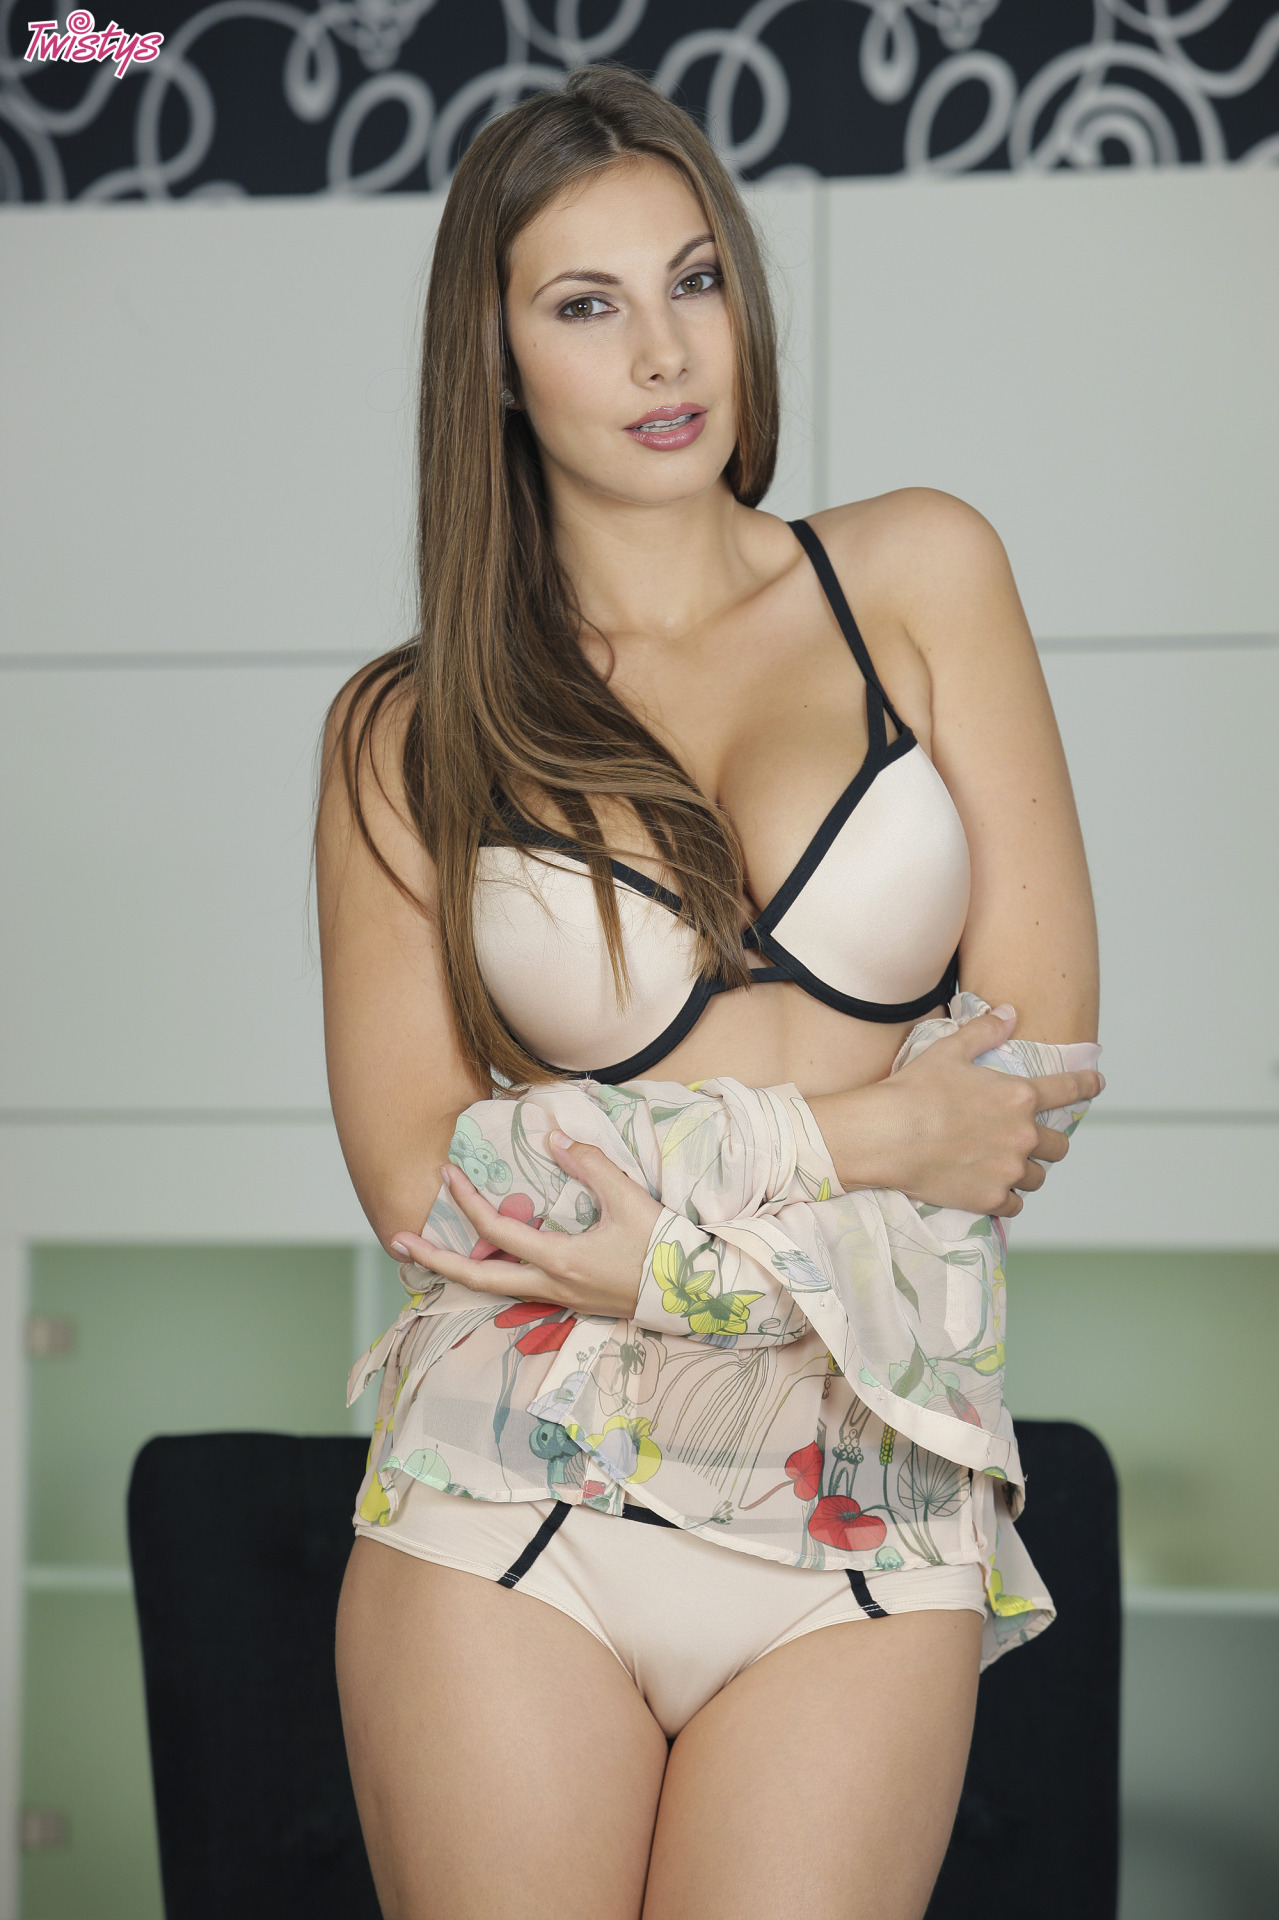 Connie Carter / Mary Grey / Conny Lior / Roselyne A / Josephine – Yet More Busty Loveliness Part 1 Of 2 2